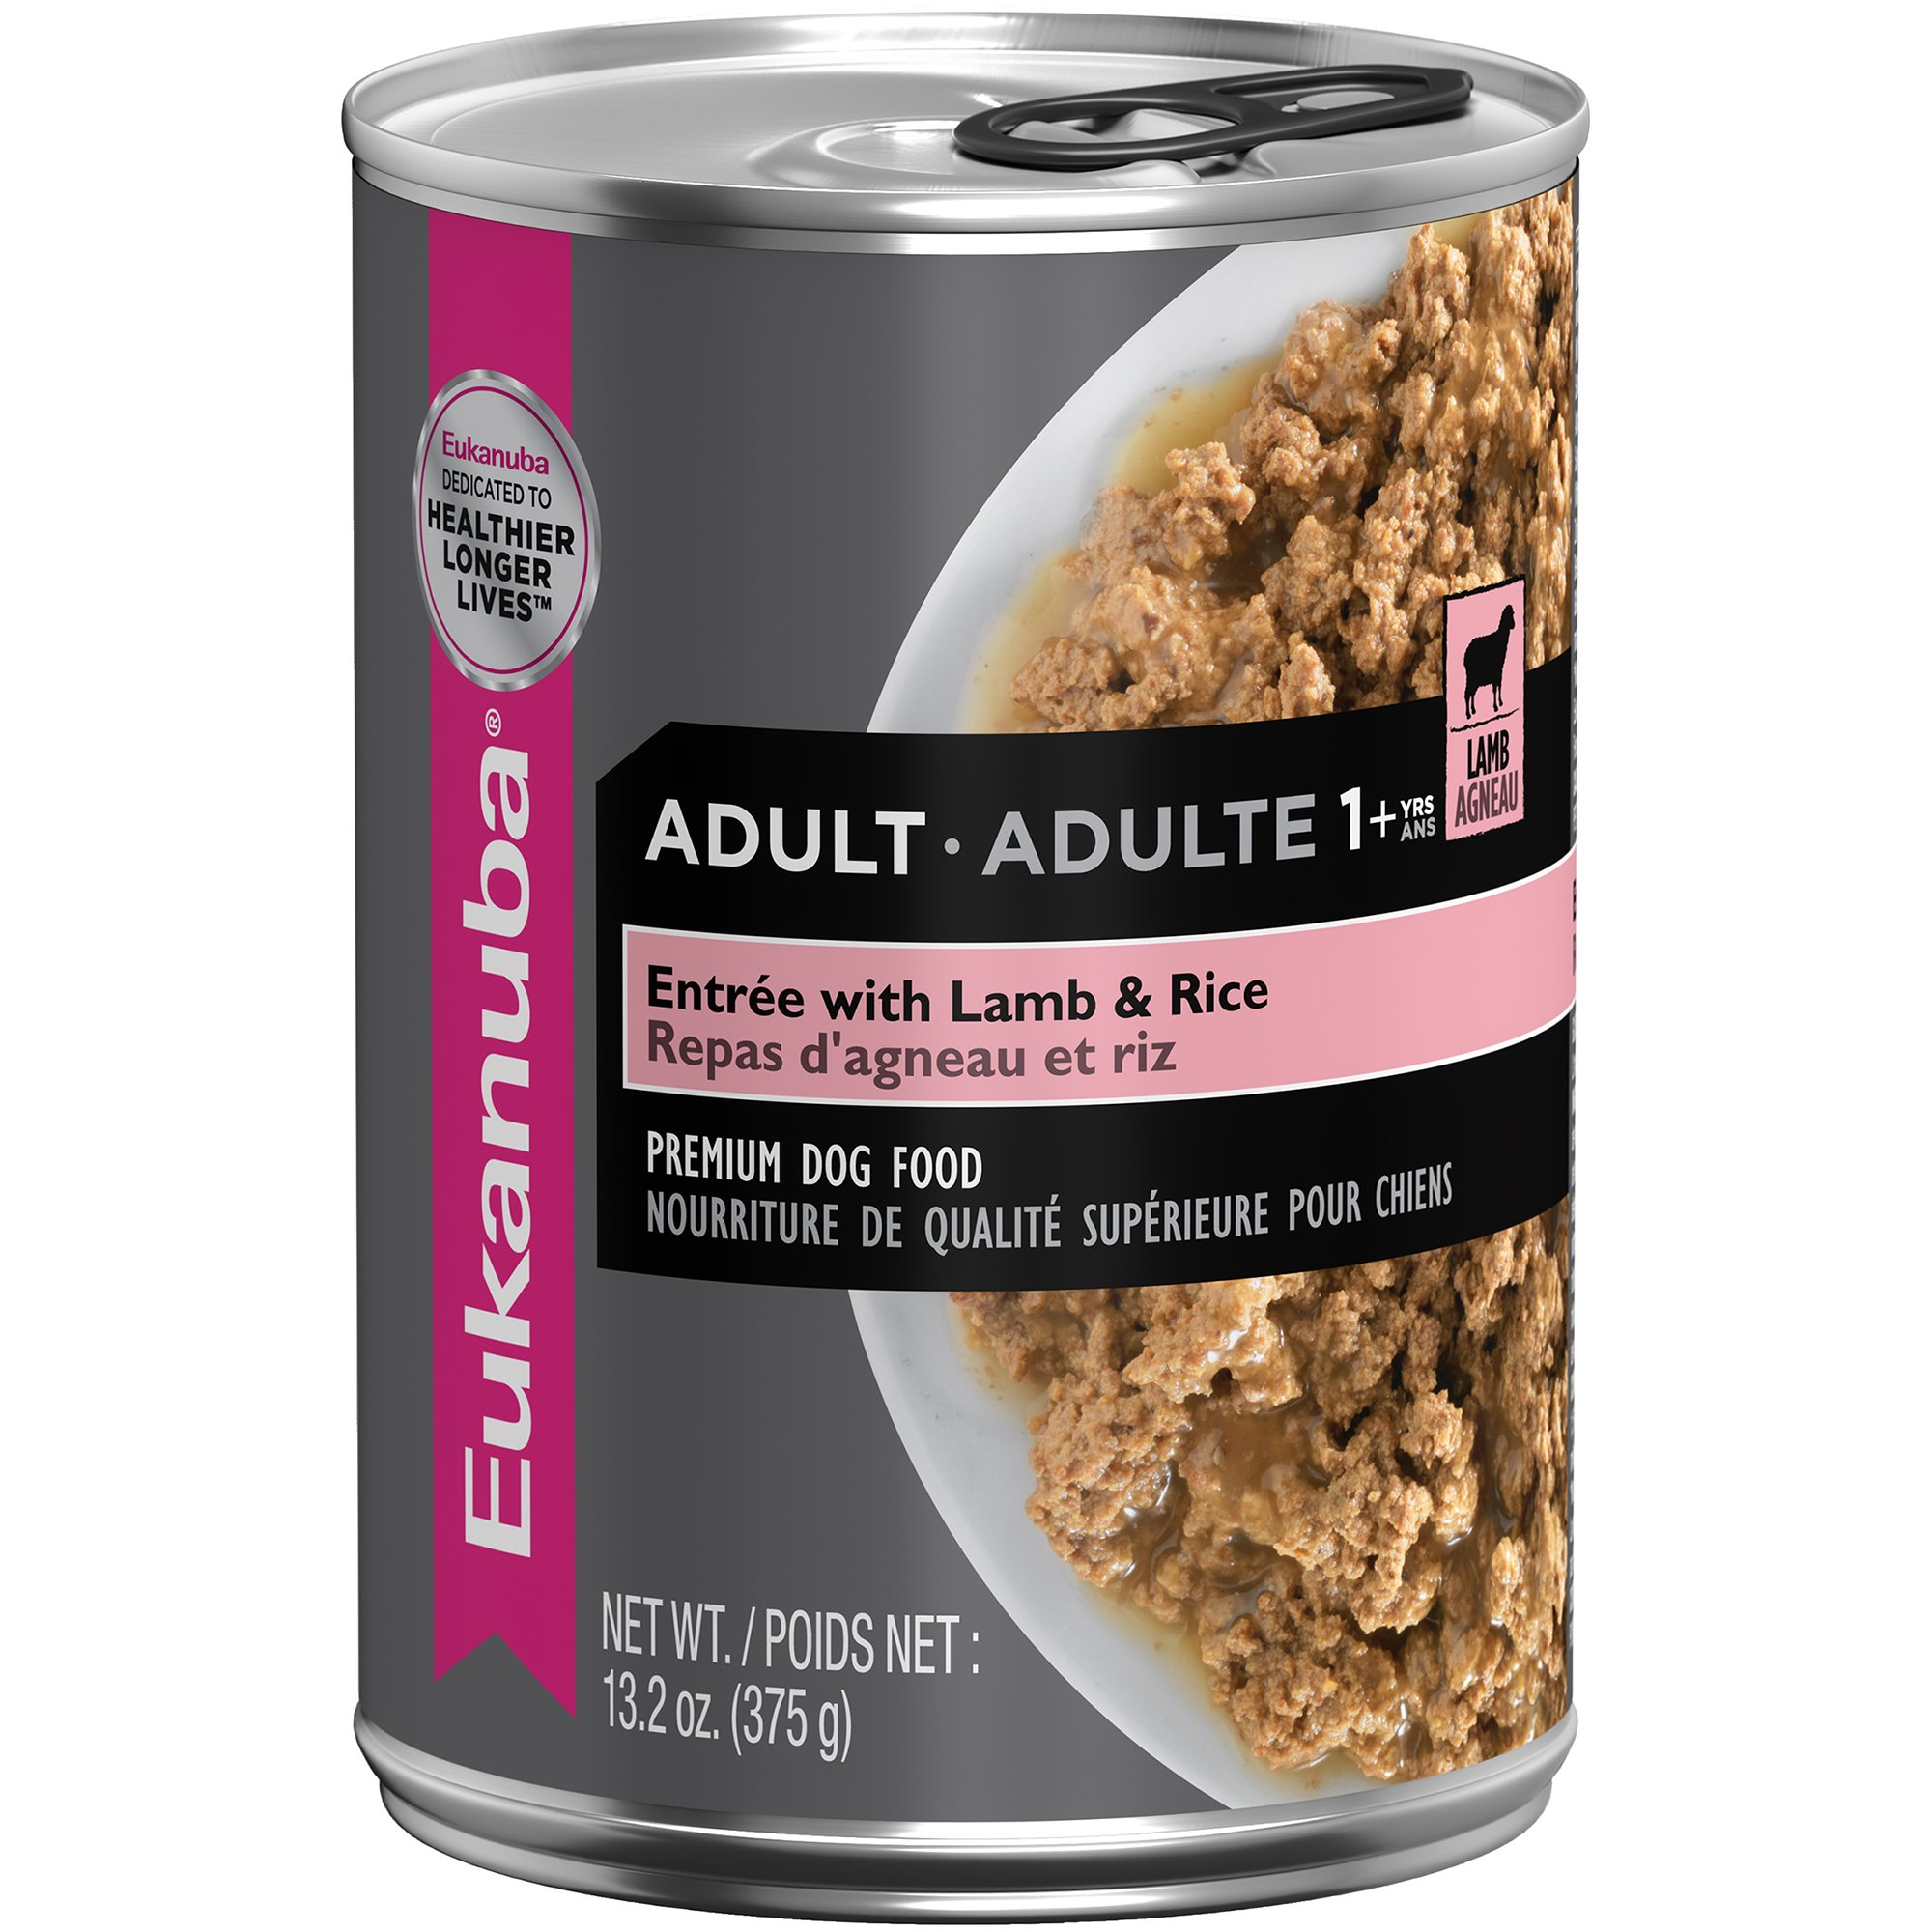 Eukanuba Ground Entree with Lamb & Rice Adult Canned Dog Food